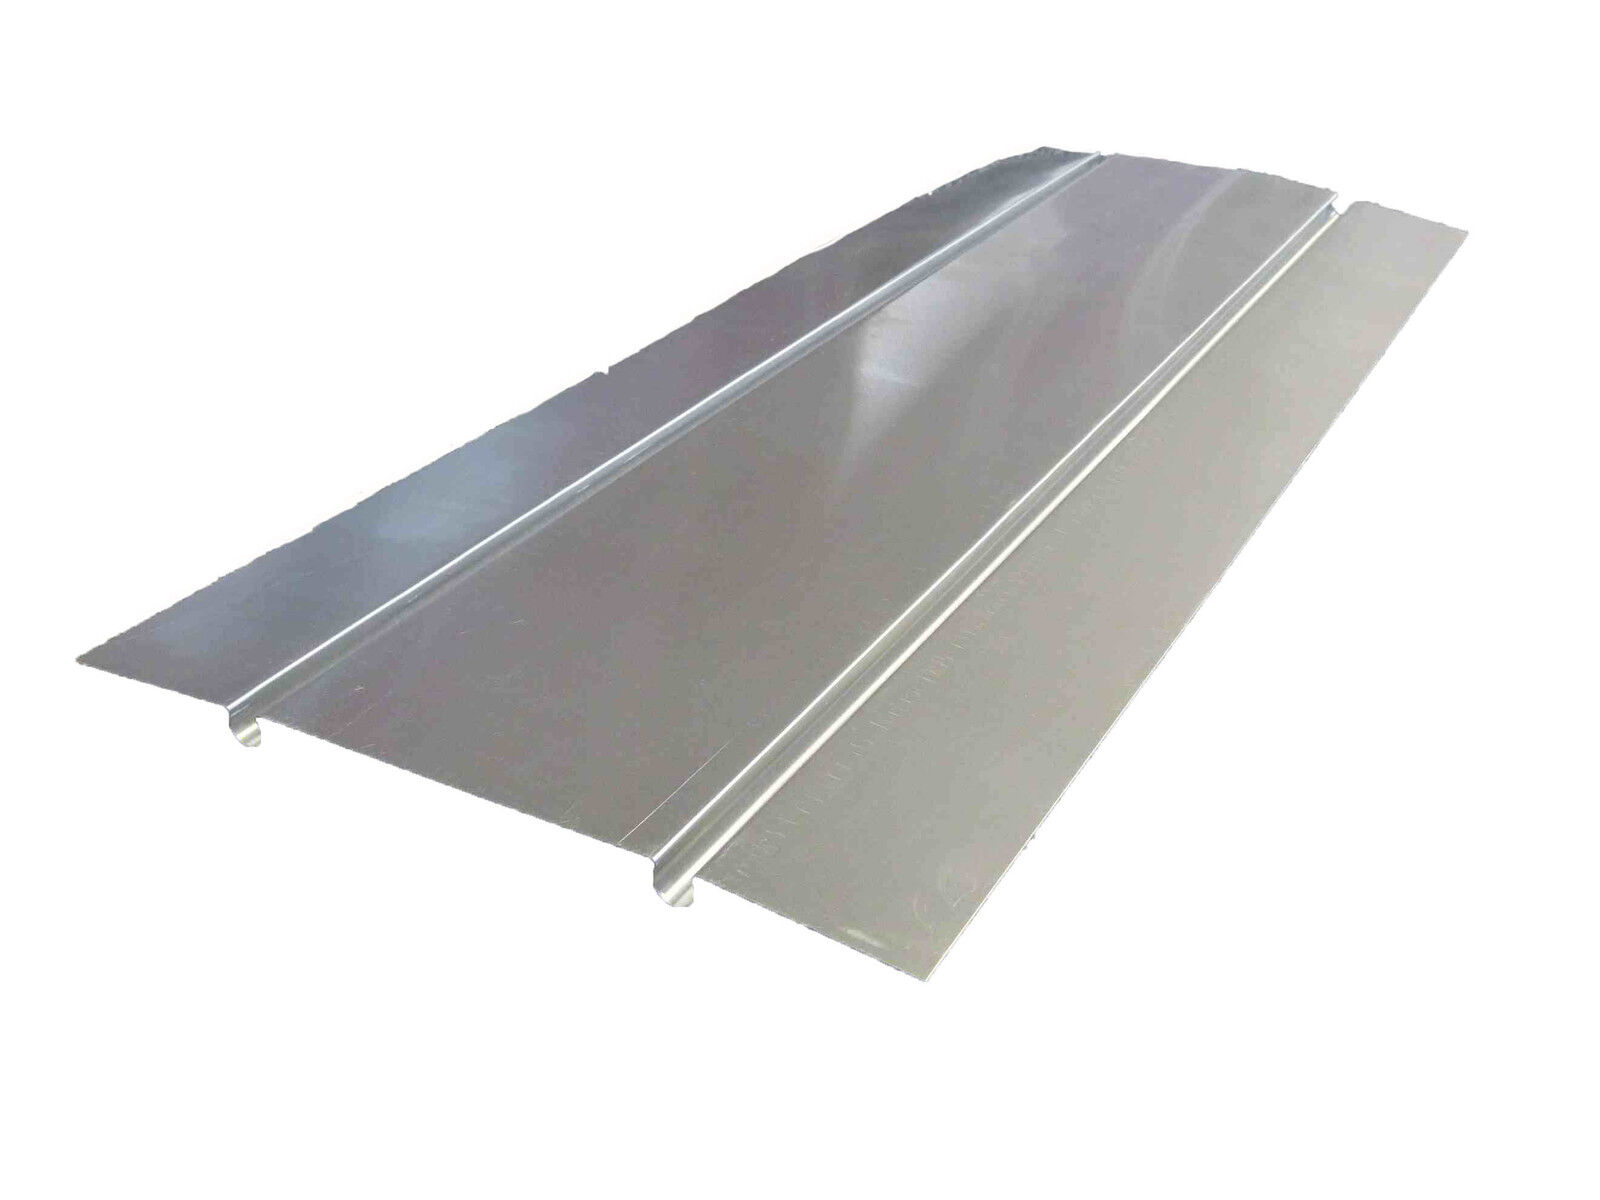 Aluminium Spreader Plates For Water Underfloor Heating. Va Home Loan After Short Sale. Virtual Pbx Unlimited Minutes. Confirmation Classes Online My Payday Loan. College Football Historical Records. Chicago Video Production Company. How To Get Eyeglass Prescription. Sharepoint Certification Training. Maryland Financial Planners Send Act Scores